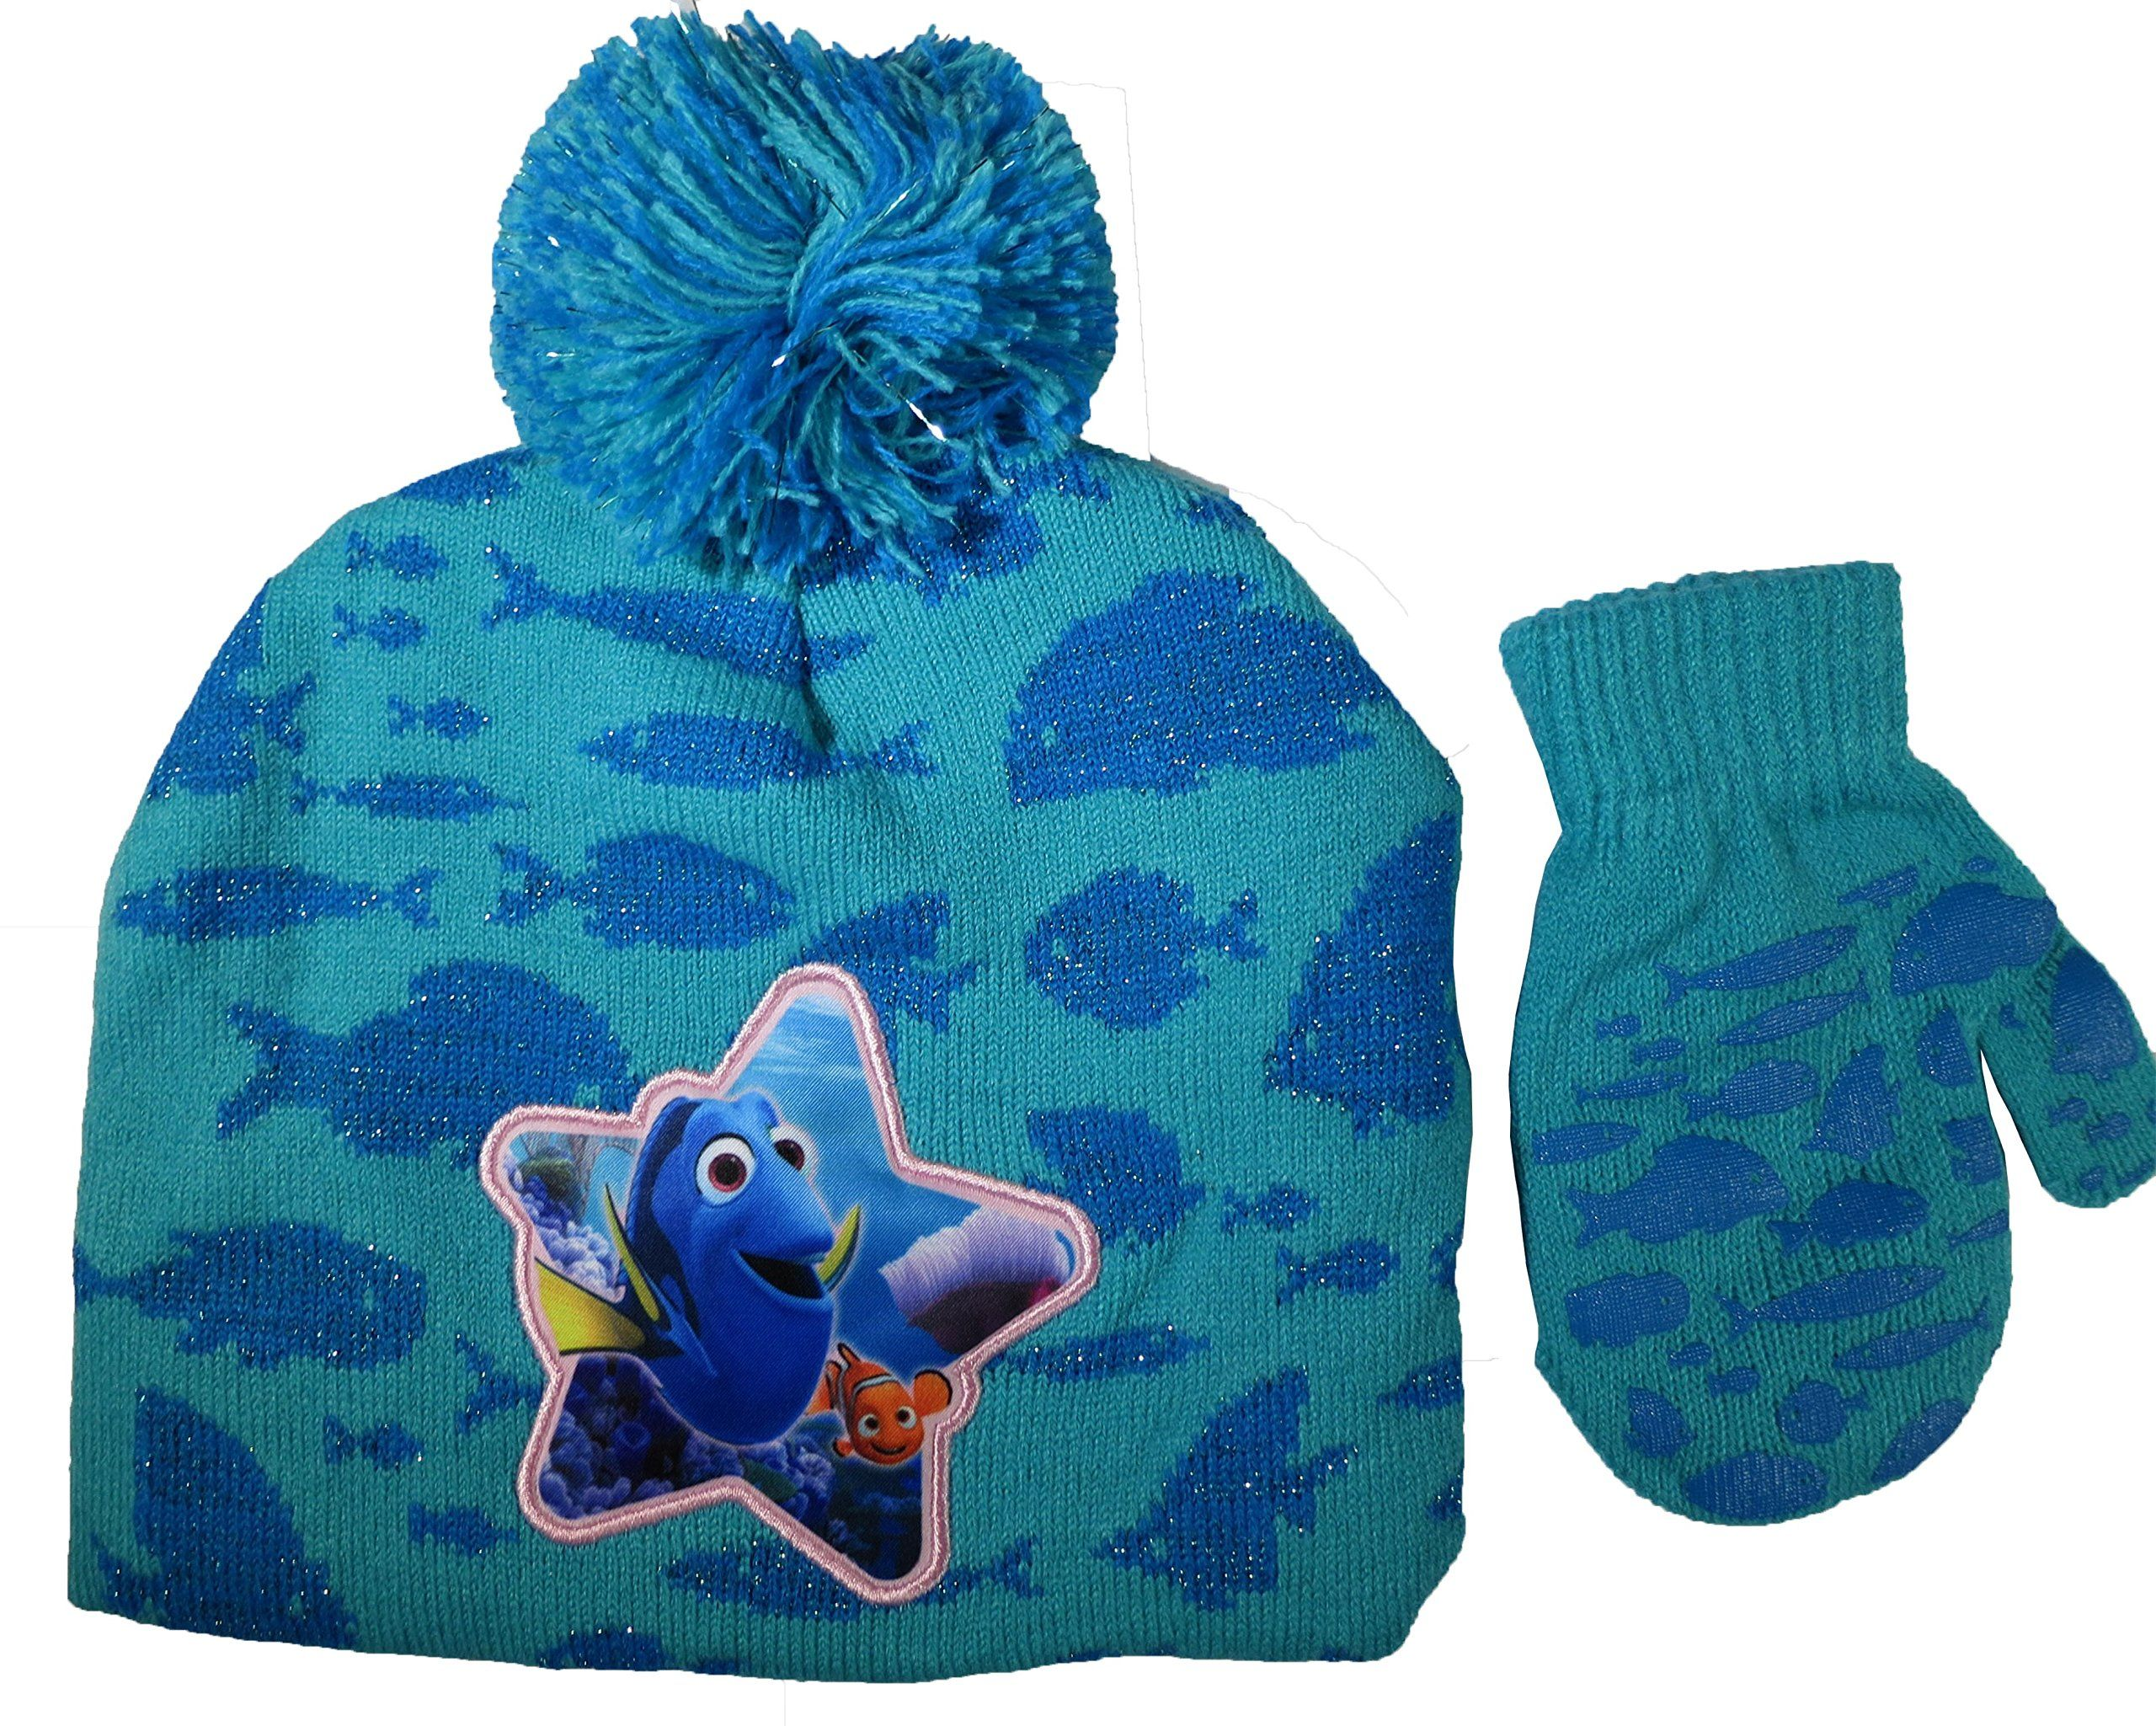 9d304ae8ef6 Disney Finding Dory Nemo Girls Hat and Mitten Set - Toddler  4013 . Features